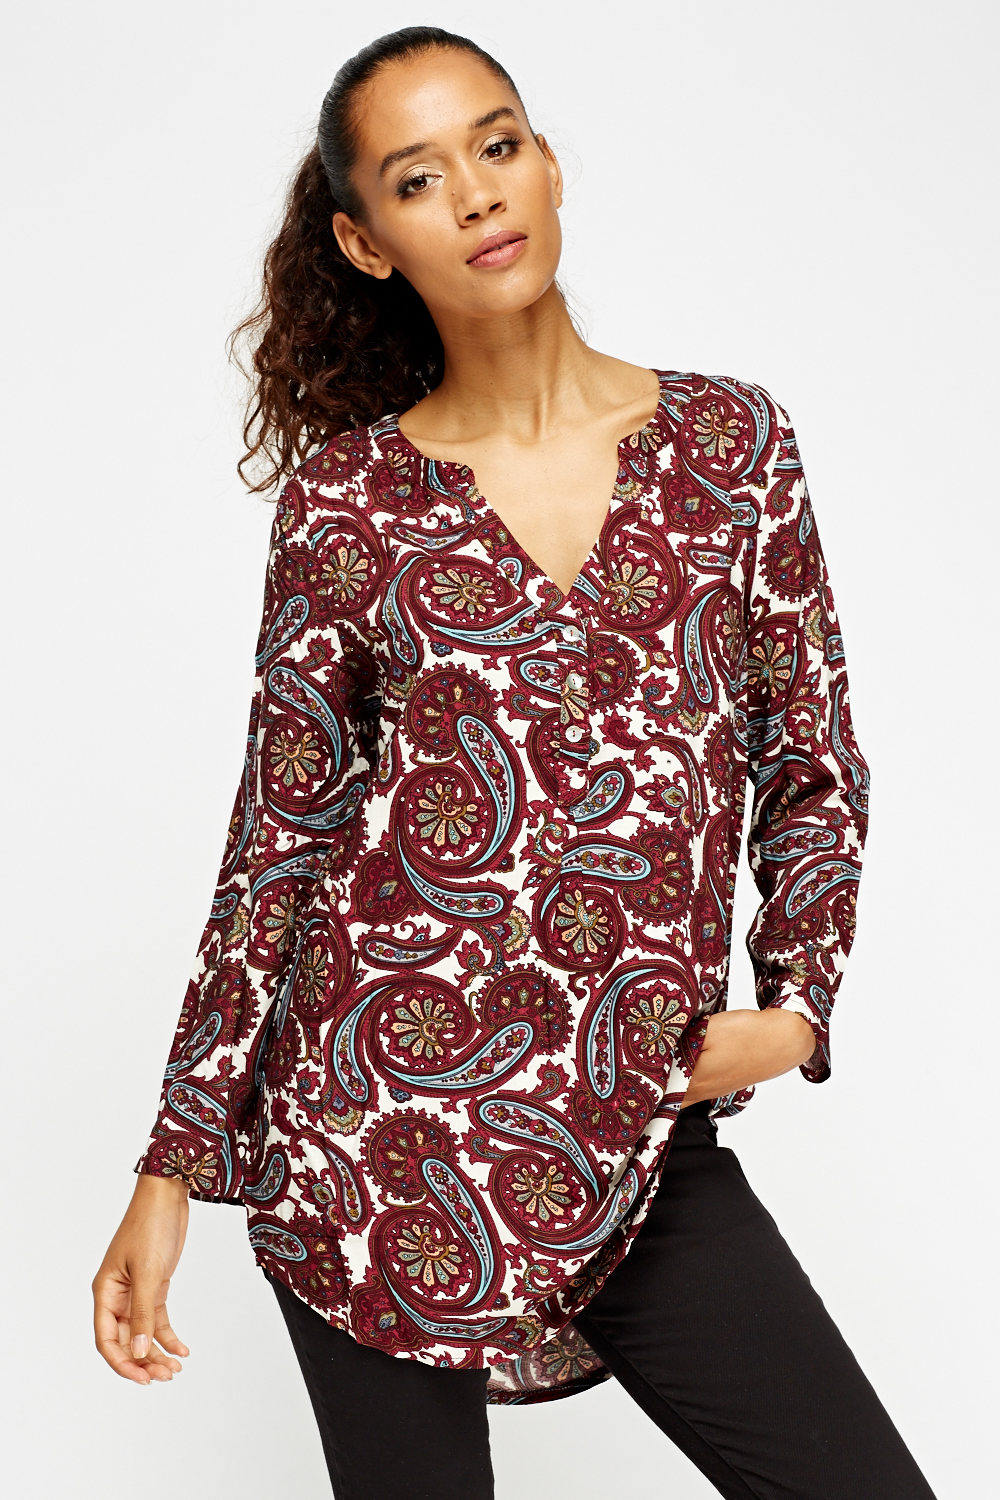 Paisley Print Embellished Tunic Top Just 163 5